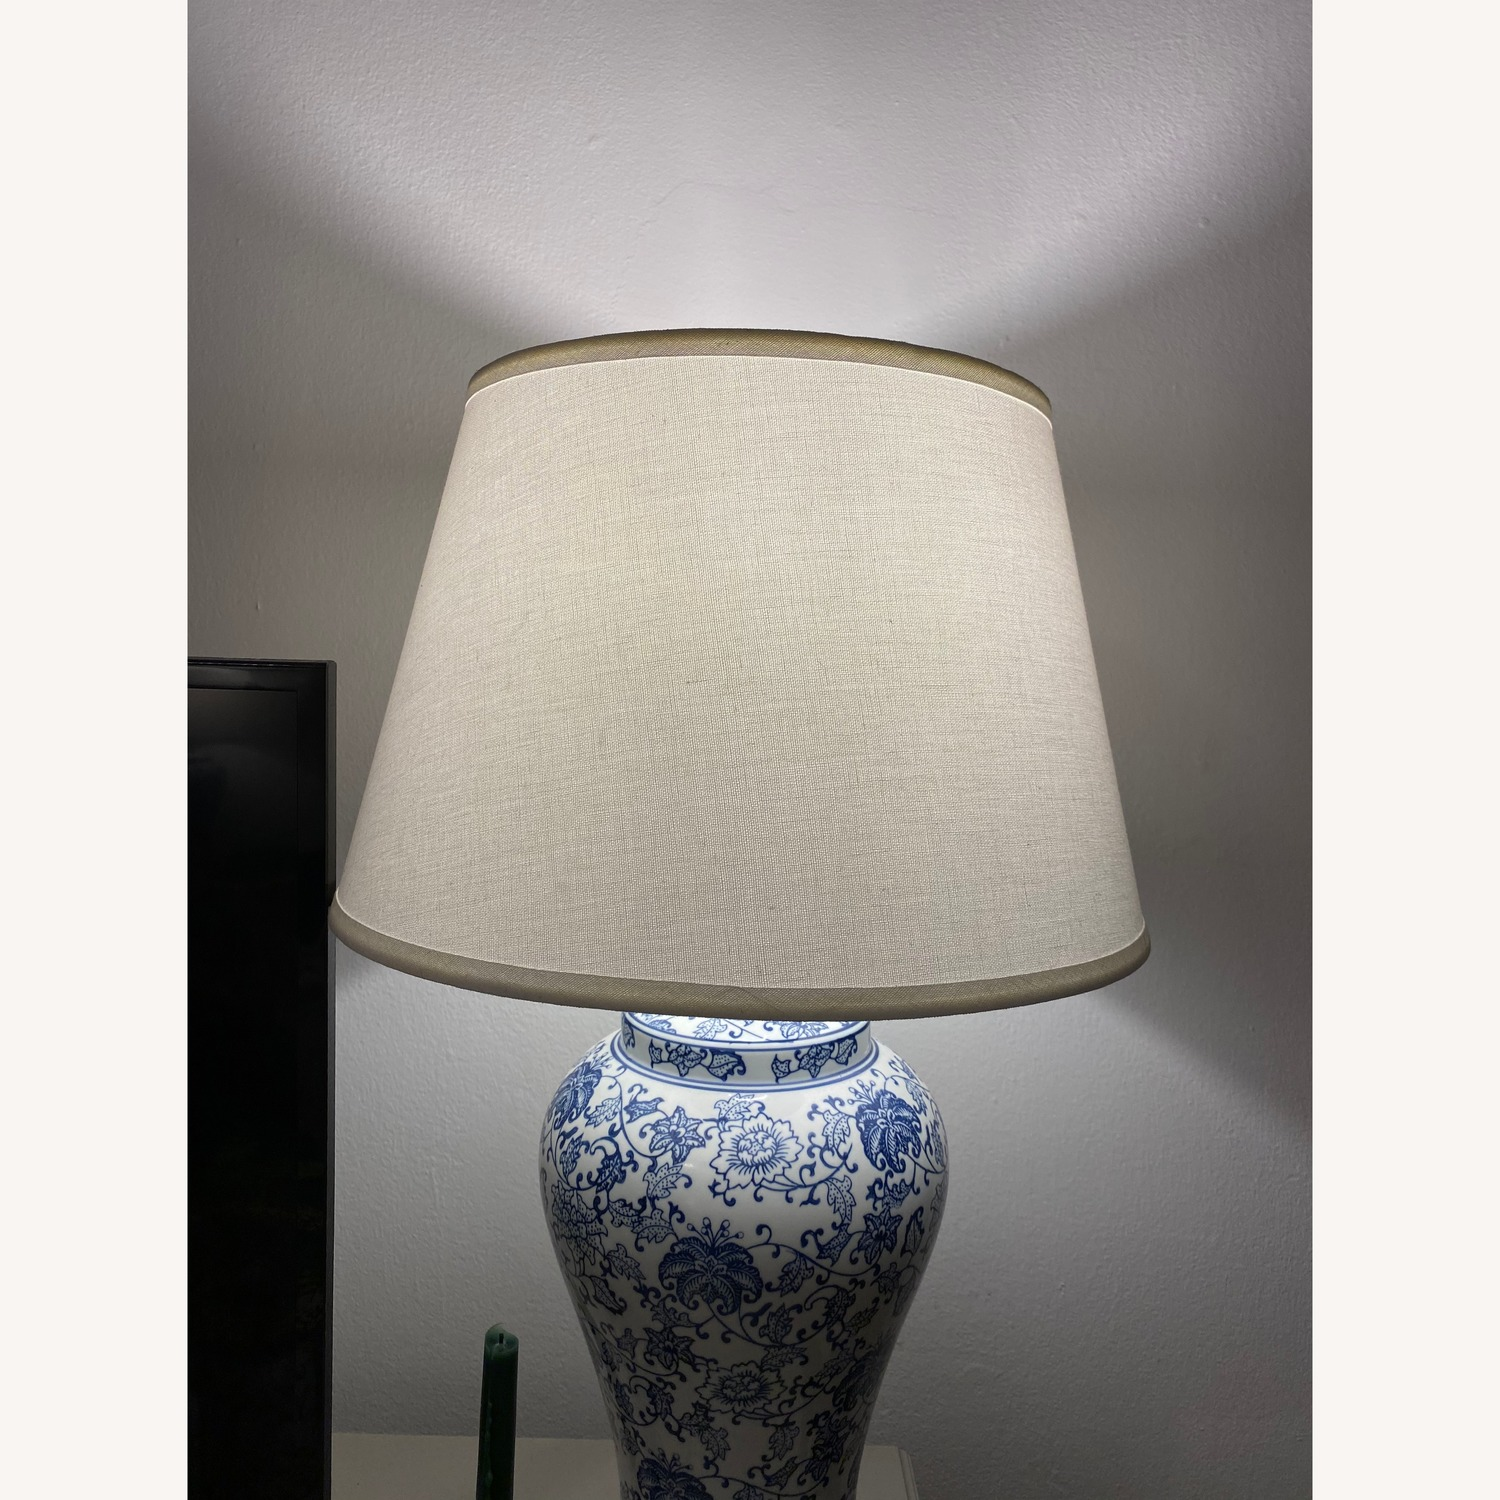 Safavieh Blossom Blue Table Lamps